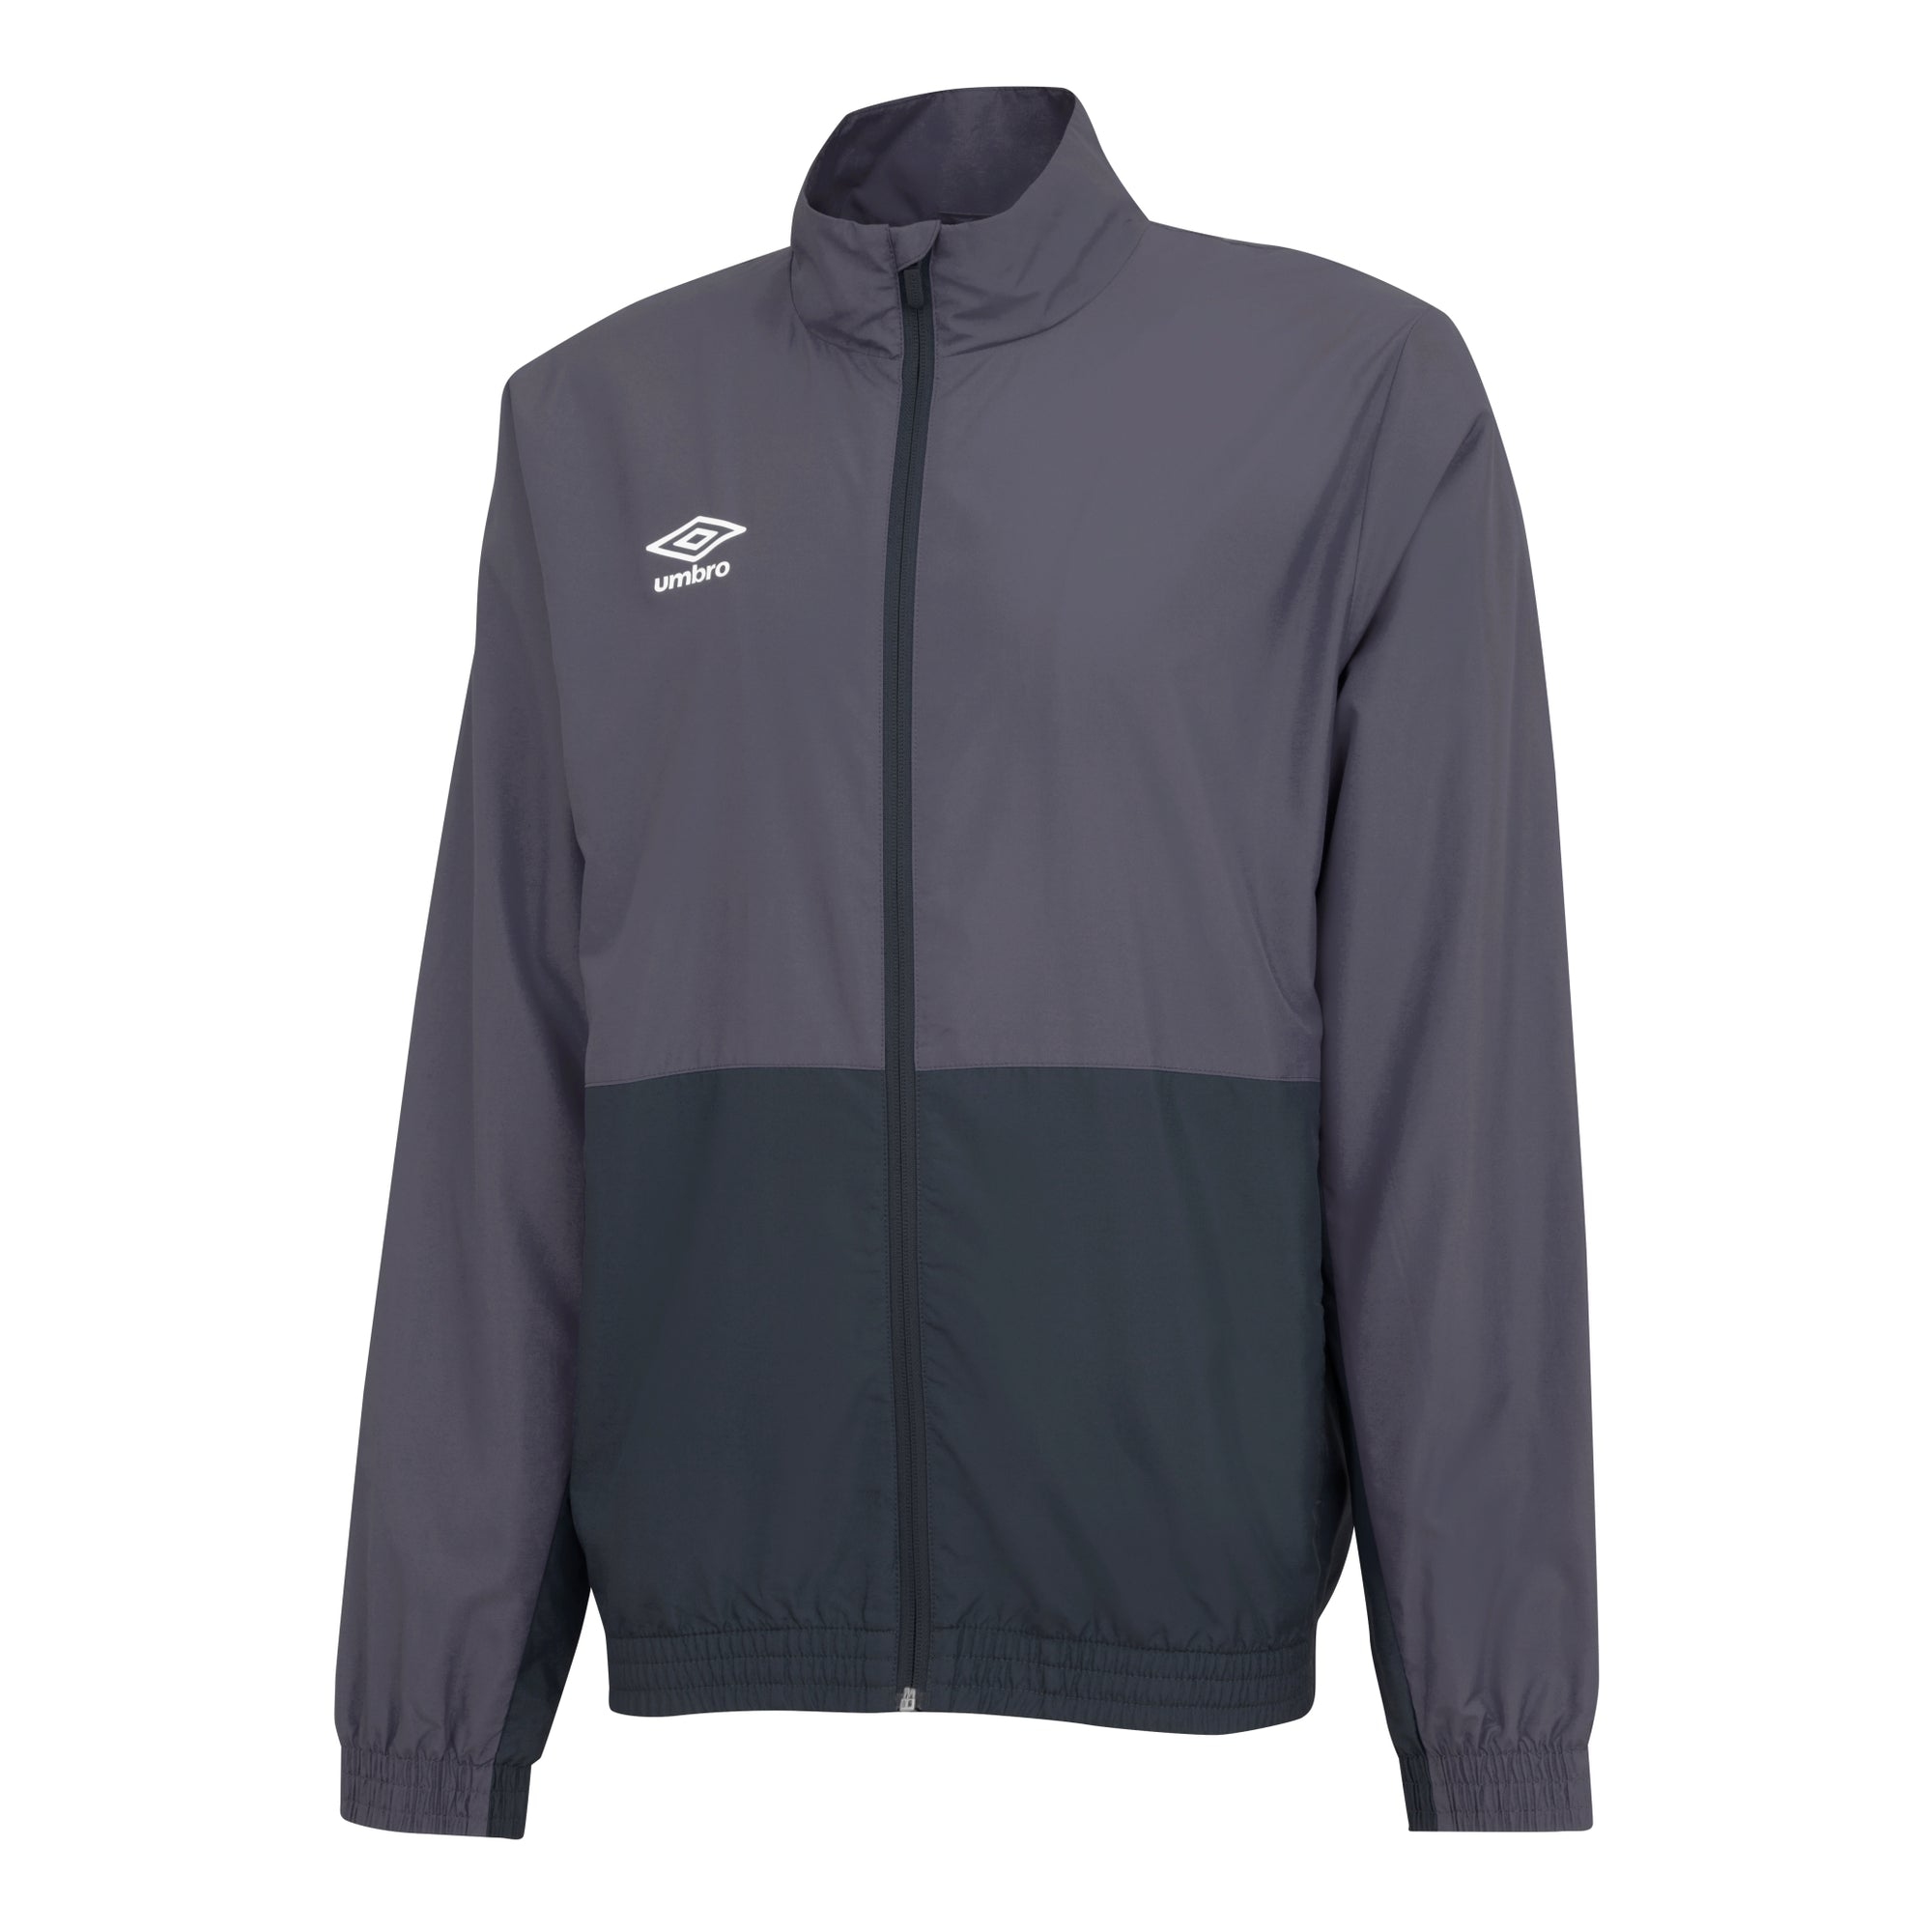 Umbro Training Woven Jacket - Carbon/Black